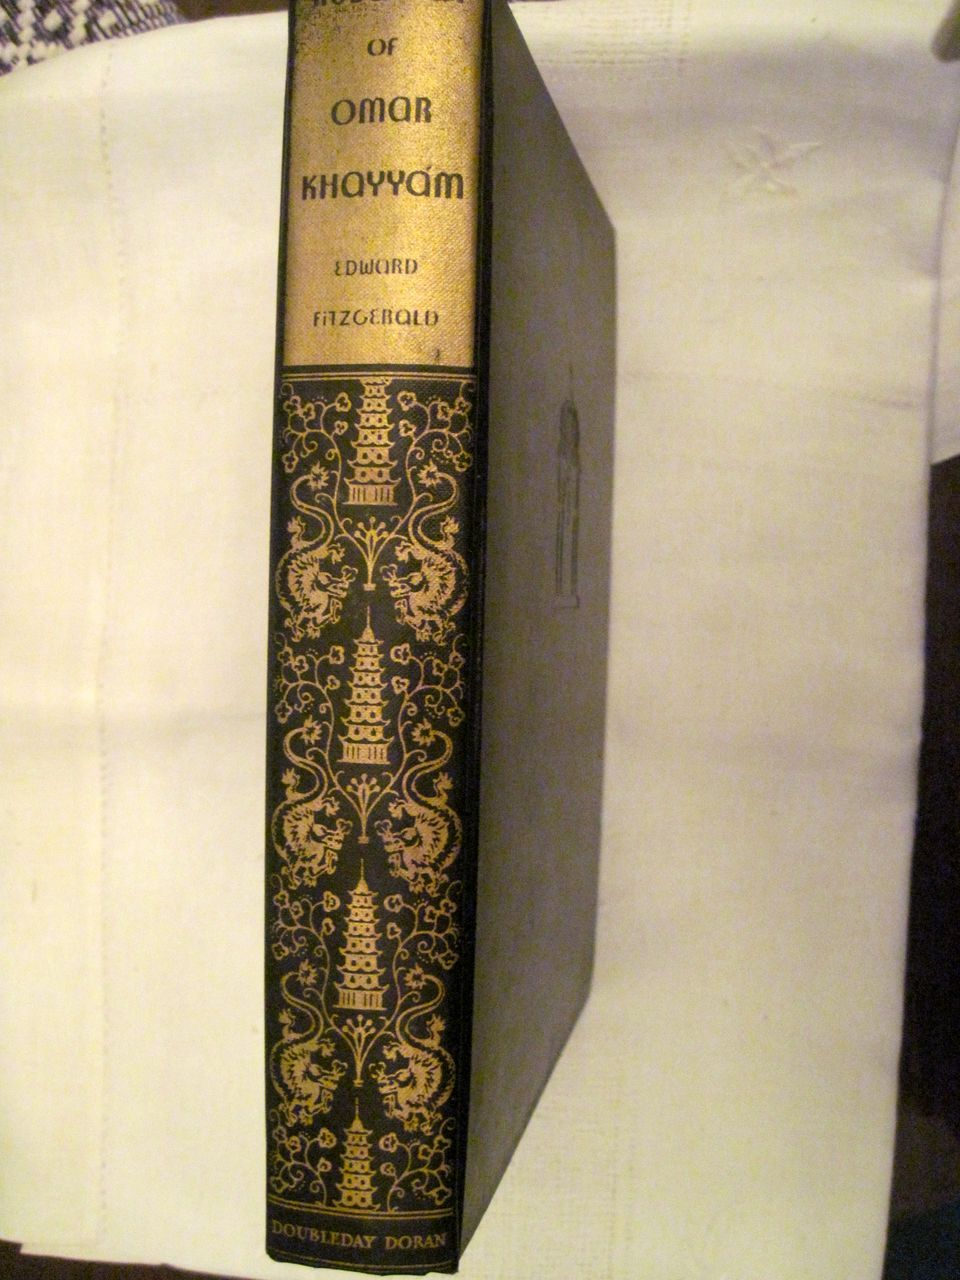 Rubaiyat of Omar Khayyam, Illustrated by Edmund Dulac, 1934, Dust jacket. 50% off